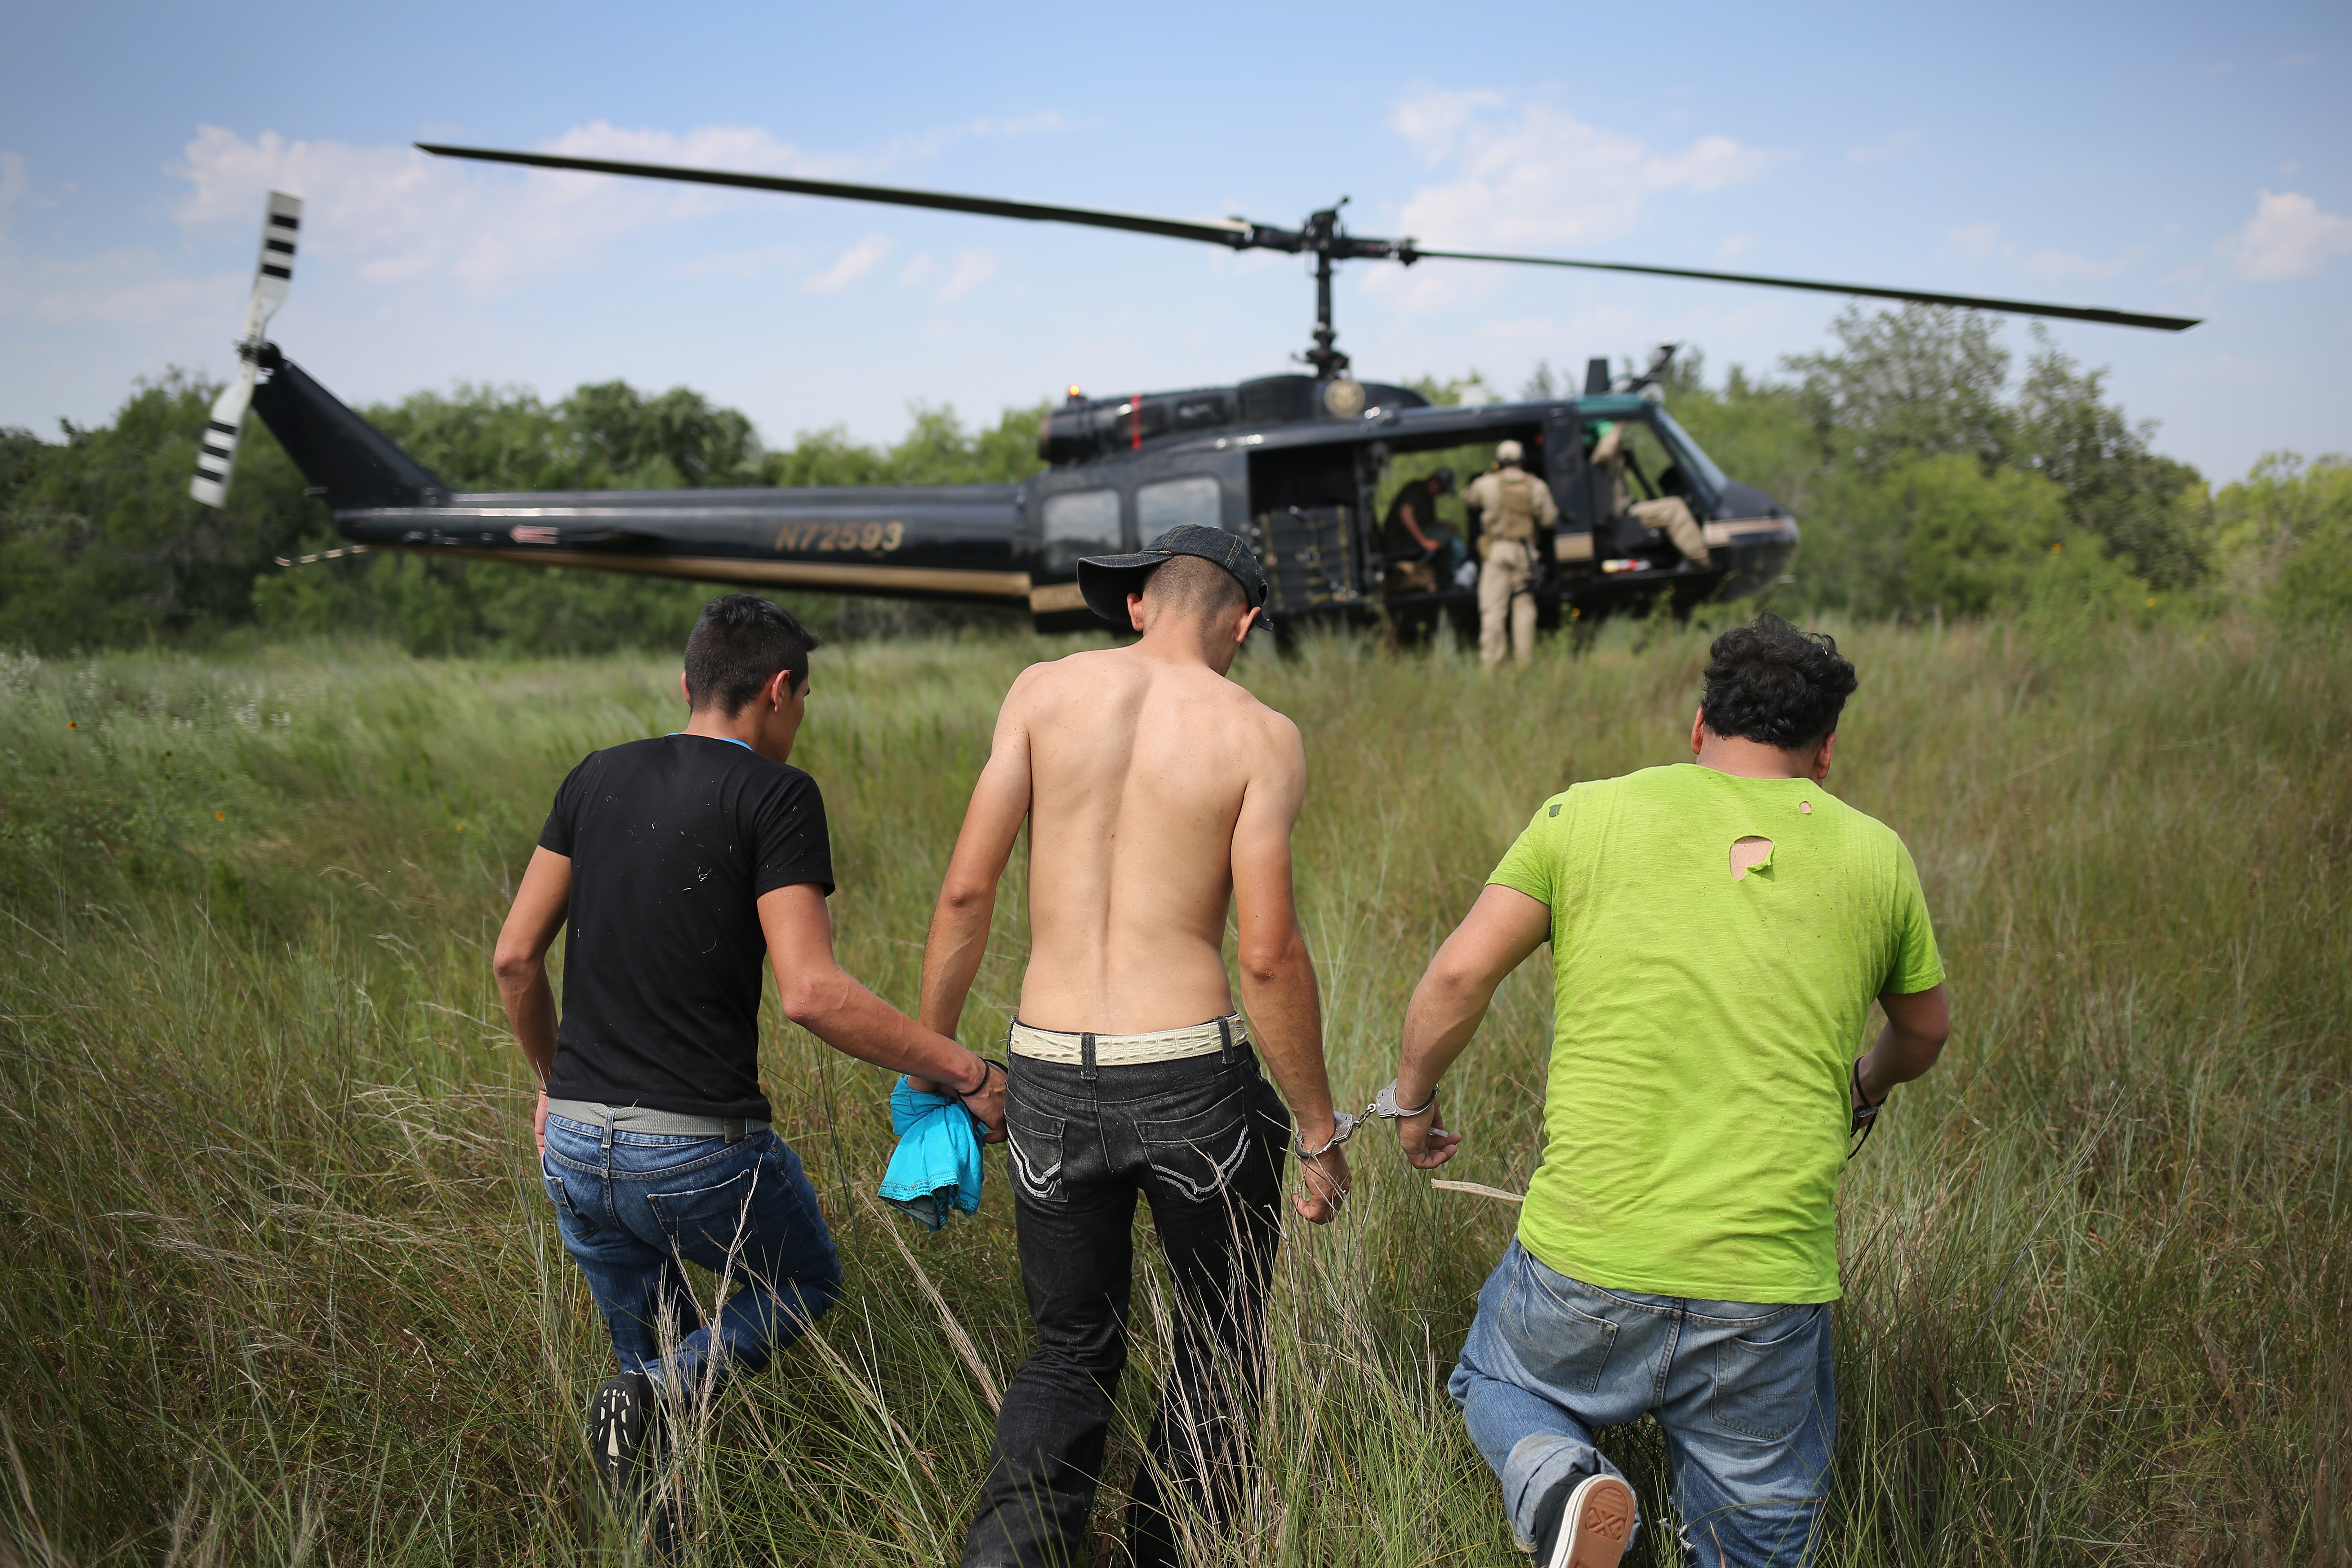 Undocumented immigrants await transport to a U.S. Customs and Border Protection processing center after being detained on July 22, 2014 near Falfurrias, Texas.